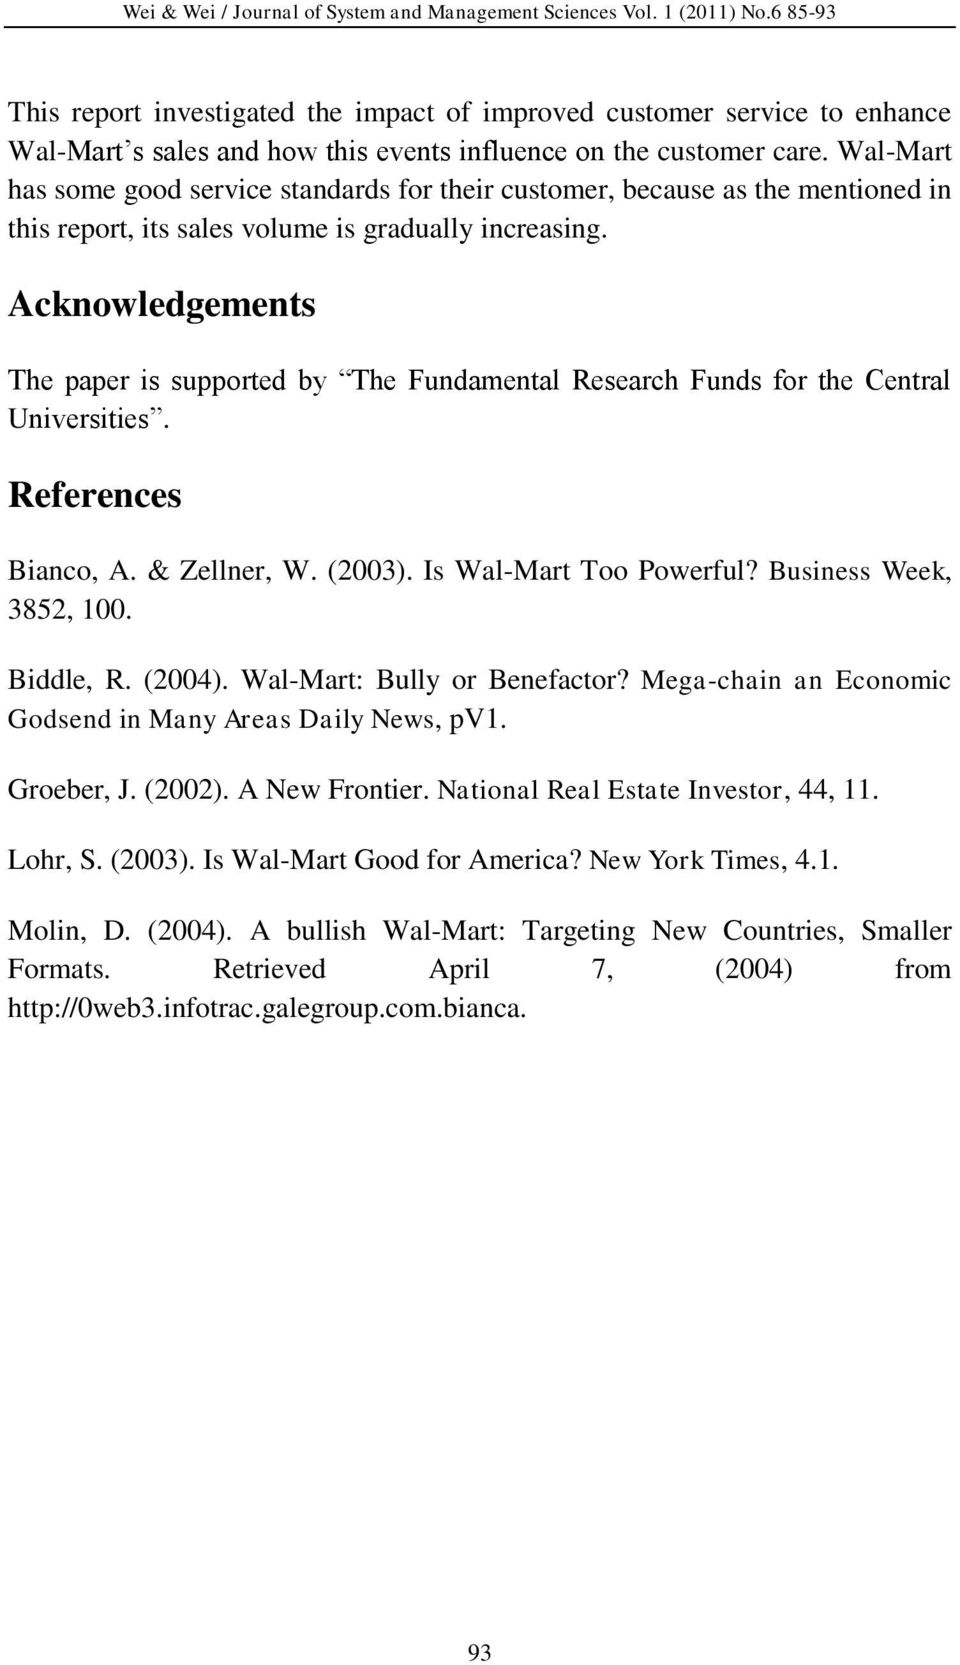 Acknowledgements The paper is supported by The Fundamental Research Funds for the Central Universities. References Bianco, A. & Zellner, W. (2003). Is Wal-Mart Too Powerful? Business Week, 3852, 100.